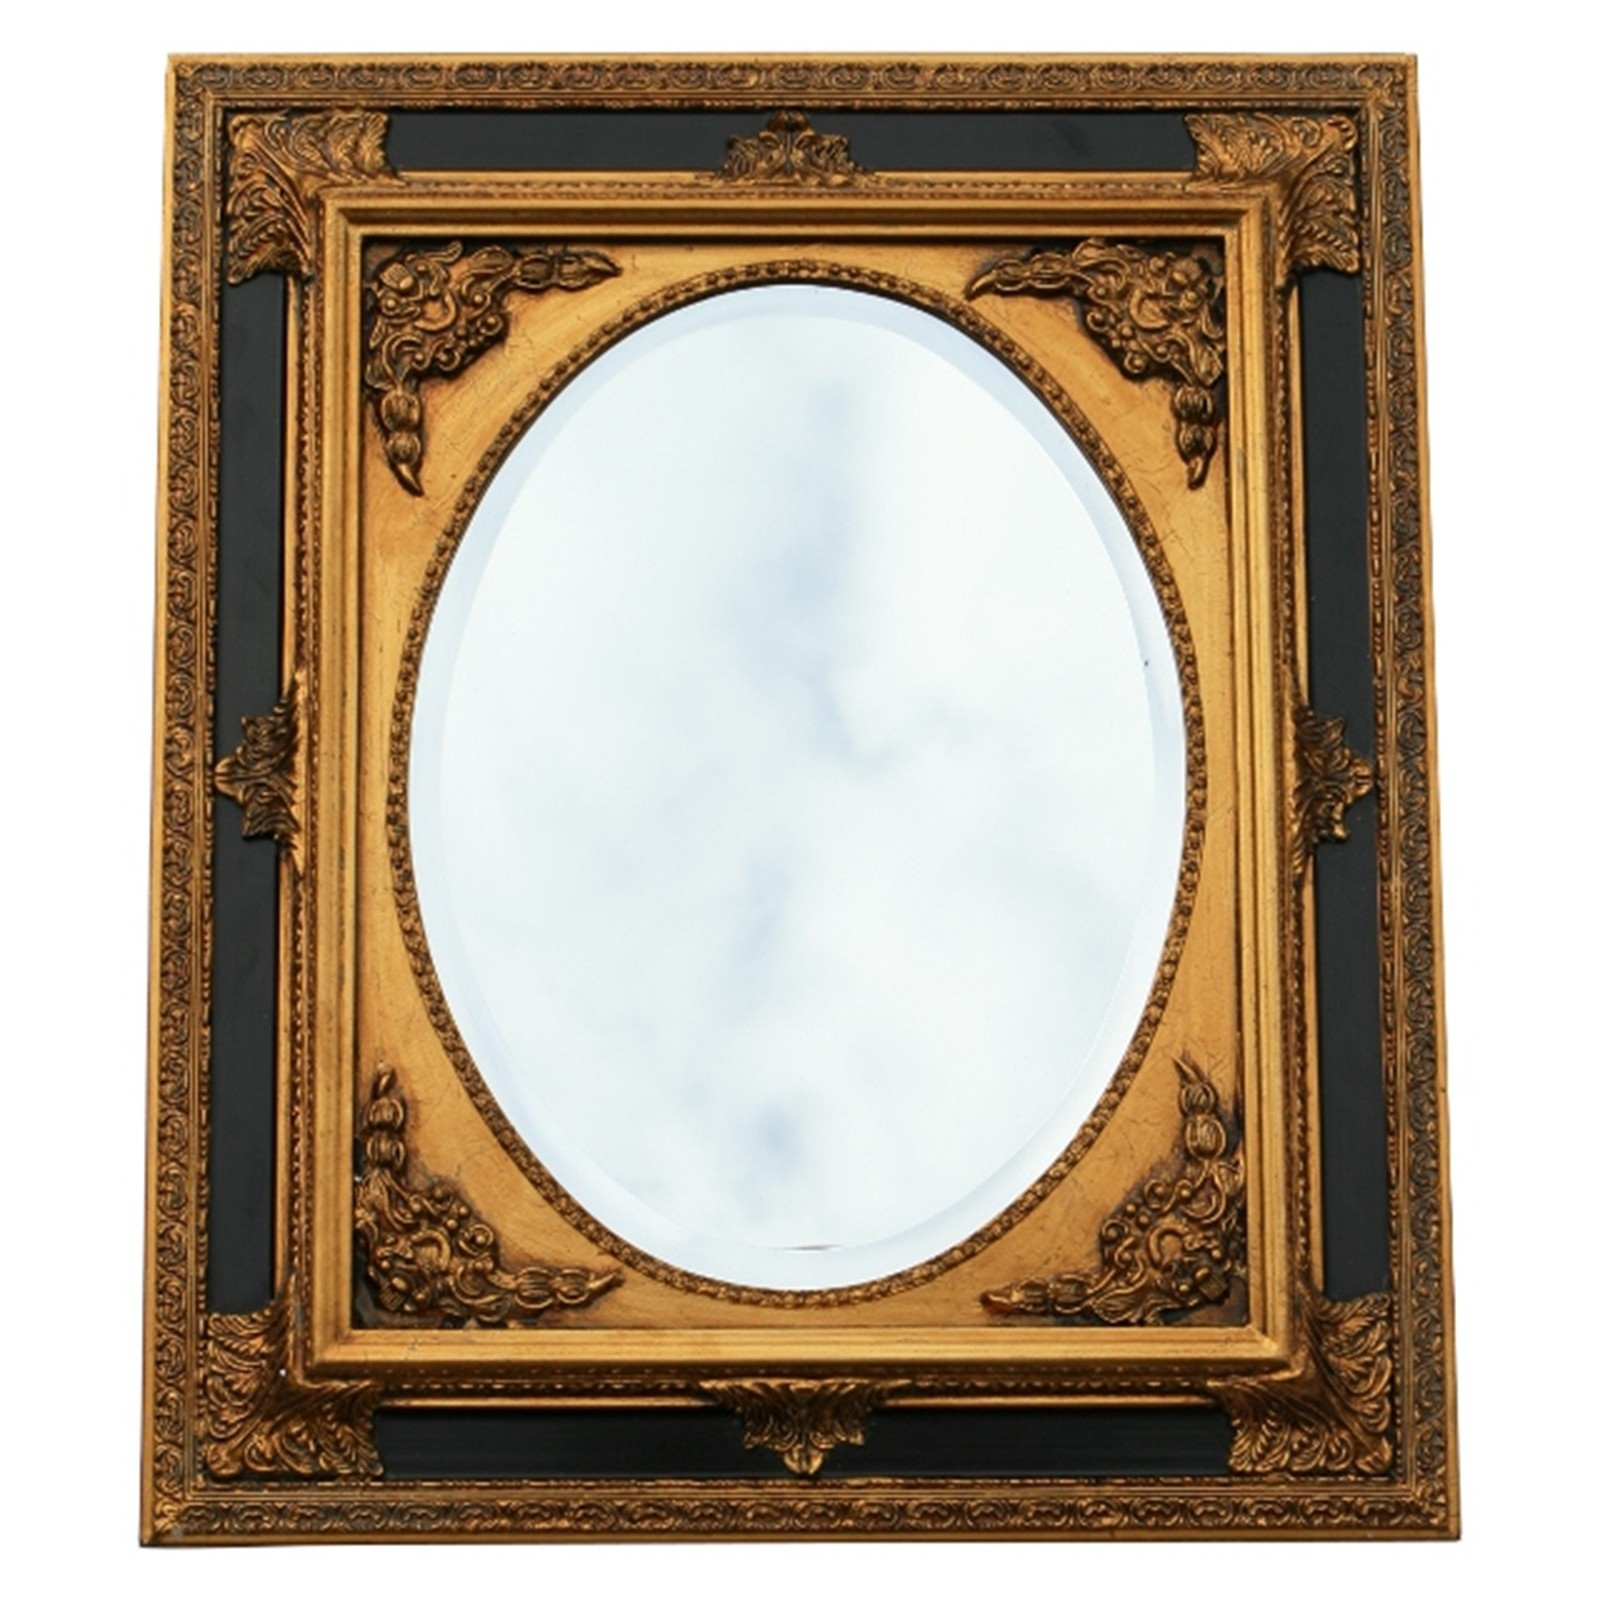 Baroque Wall Mirror Oval Ornate Frame 50×60 20×24 Inches Antique Throughout Baroque Mirror Black (Image 5 of 15)